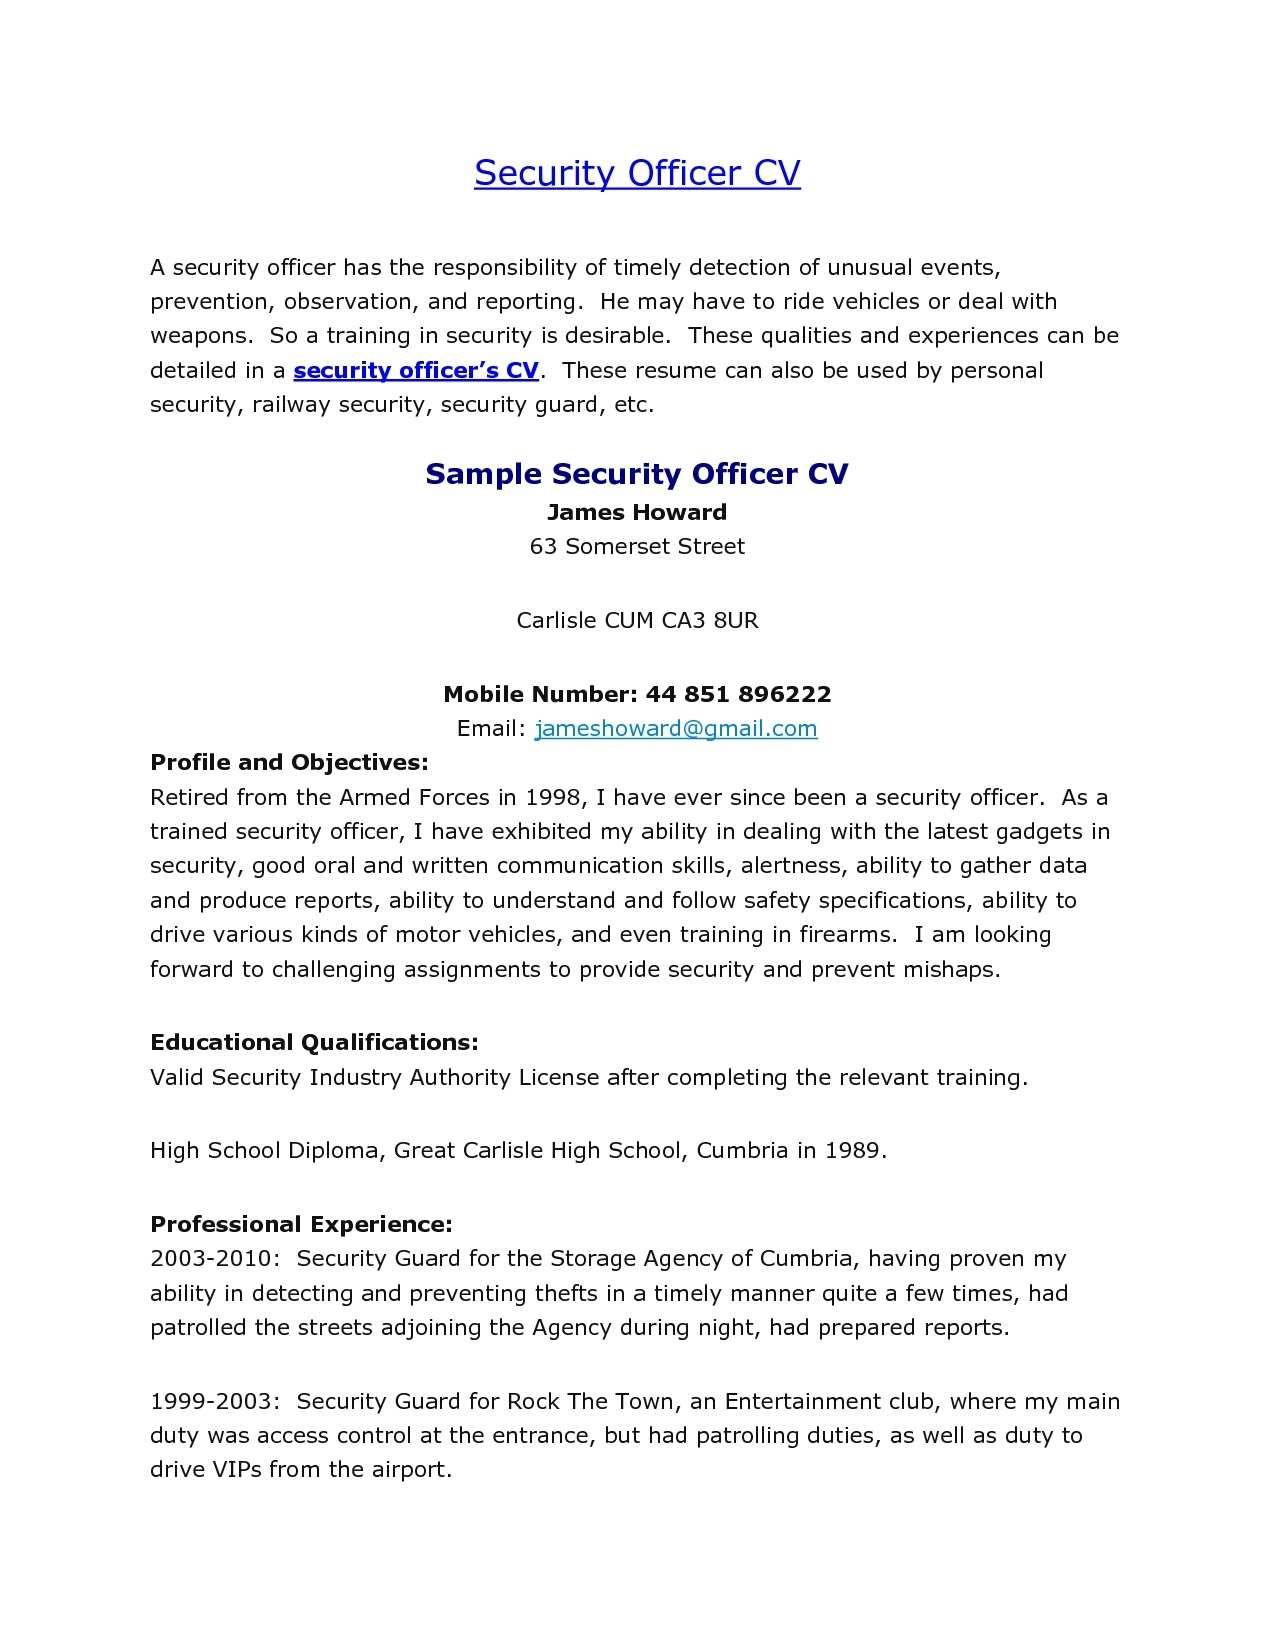 Related Image Security Officer Security Guard Jobs Security Resume